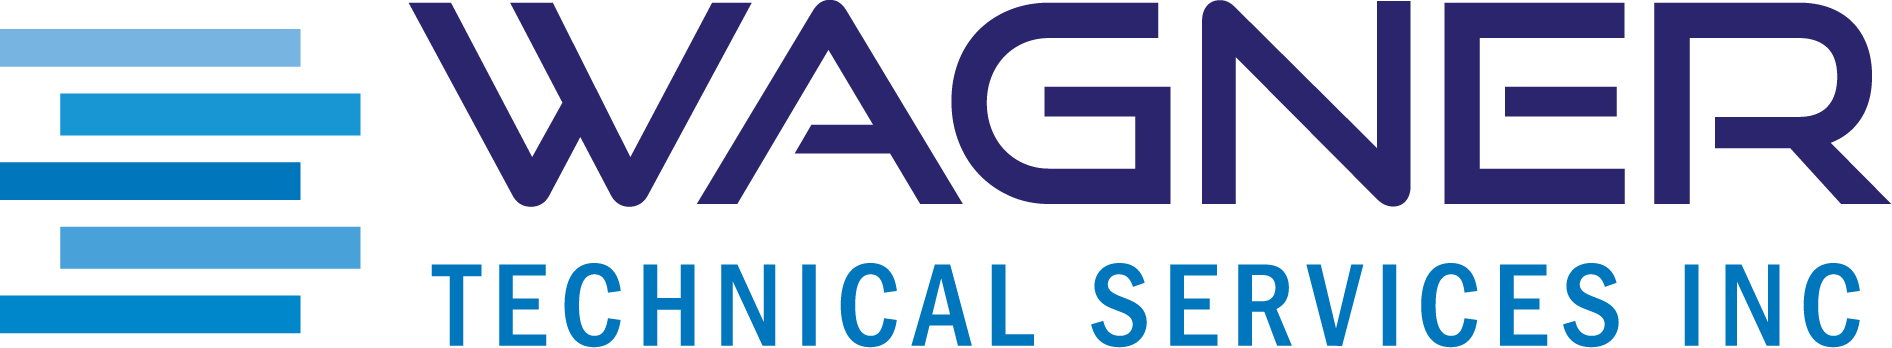 Wagner Technical Services Logo_Original